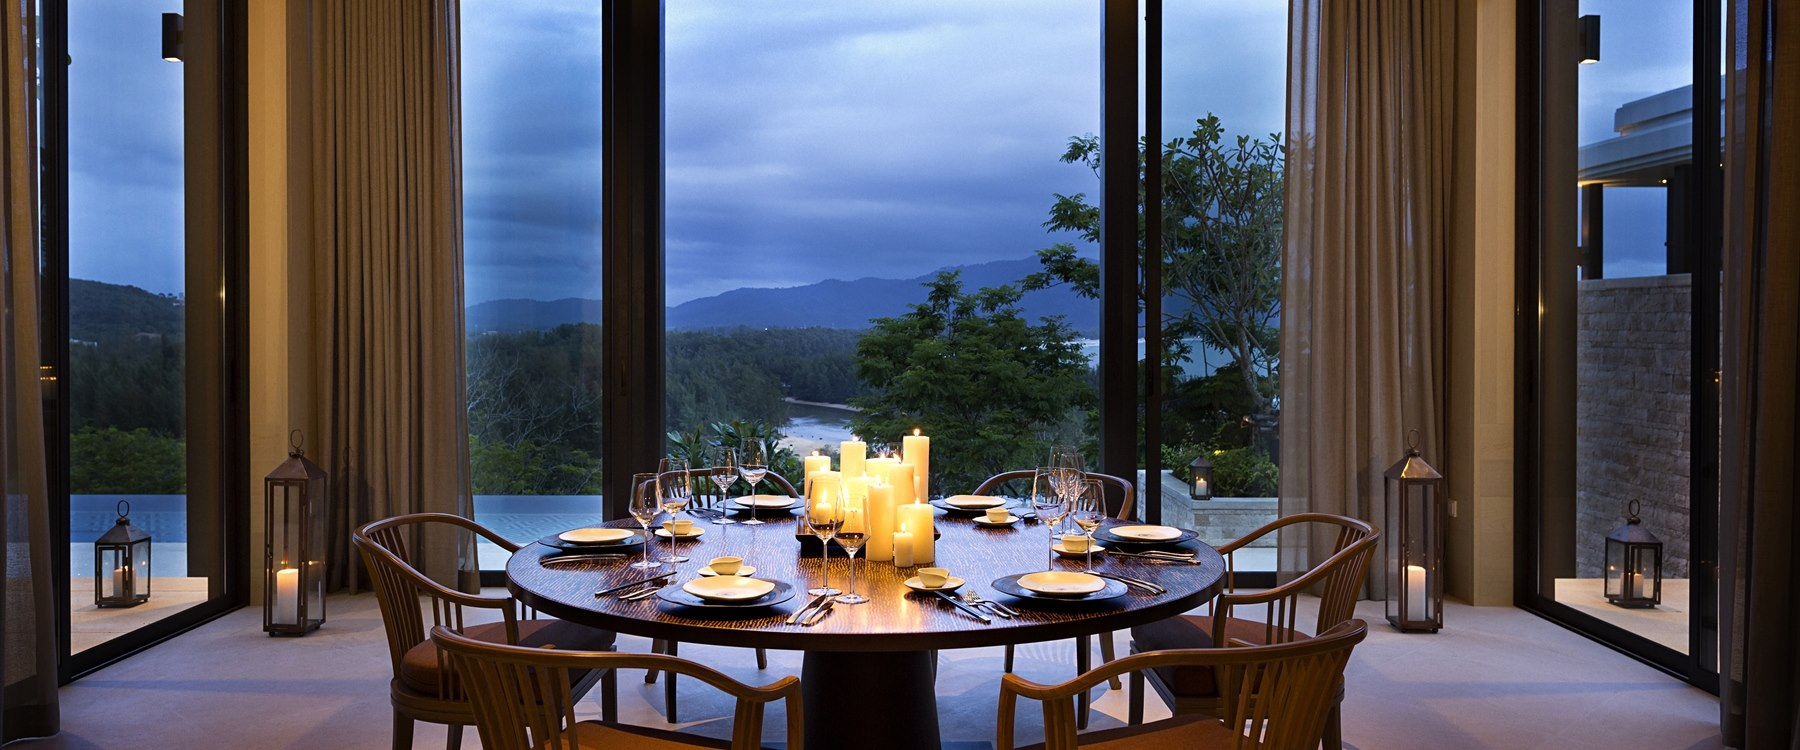 Residences Dining at Anantara Layan Phuket Resort, Thailand